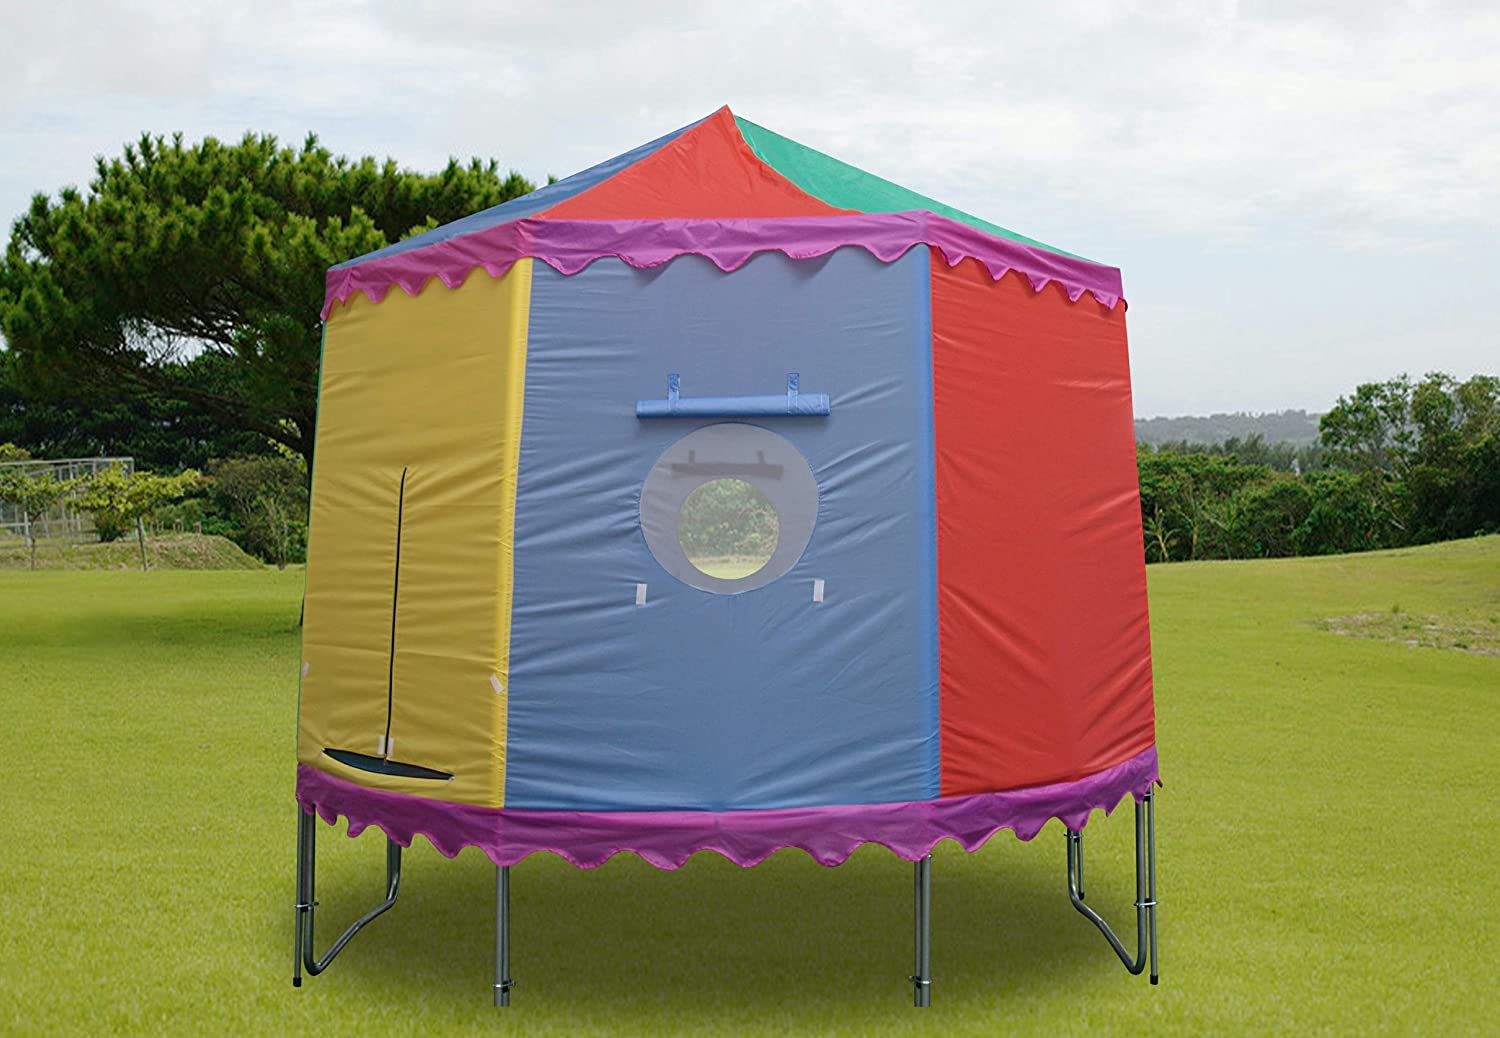 10 Ft Tr&oline Tent with 6 Poles - Circular Circus Style u0026 Fits Over Existing Tr&oline Enclosure Amazon.co.uk Sports u0026 Outdoors & 10 Ft Trampoline Tent with 6 Poles - Circular Circus Style u0026 Fits ...